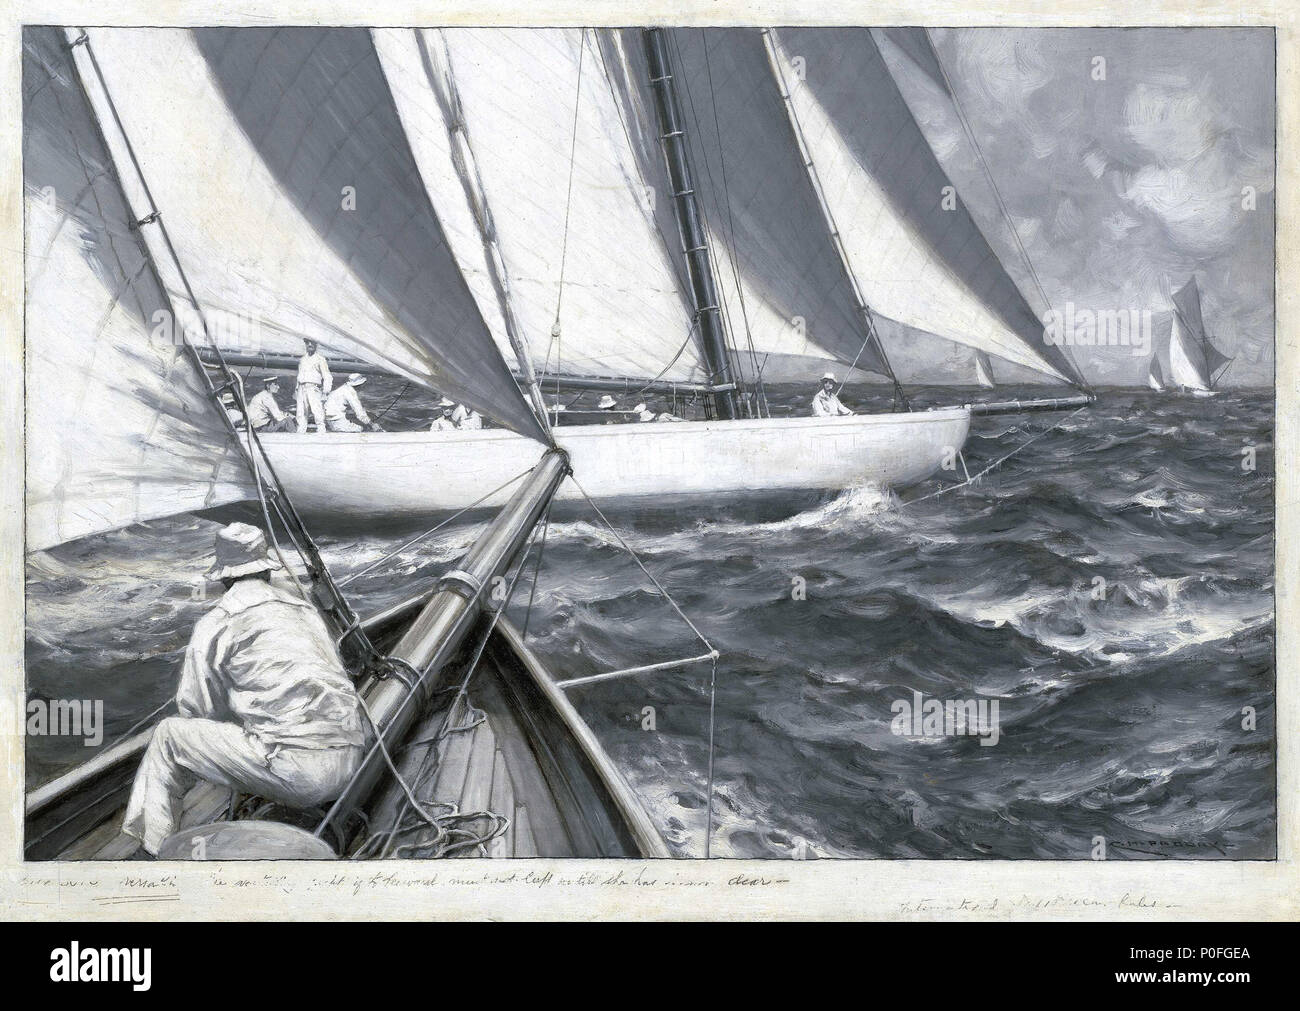 .  English: A yacht luffing Two yachts are shown during a race. The yacht in the centre has a large crew and is shown in the act of luffing. This ensures the vessel sails as close to the wind as possible and does not sag down to leeward. The monochrome palette of the painting, combined with close attention to detail, and the foreshortened and cropped angle of the yacht on the foreground on the left, creates the effect of a photograph. The painting is one of a pair with 'A Yacht Ashore', BHC1280 and is signed 'C.M. PADDAY'. A yacht luffing  . Late 19th century - Mid 20th century. Charles M Padd - Stock Image